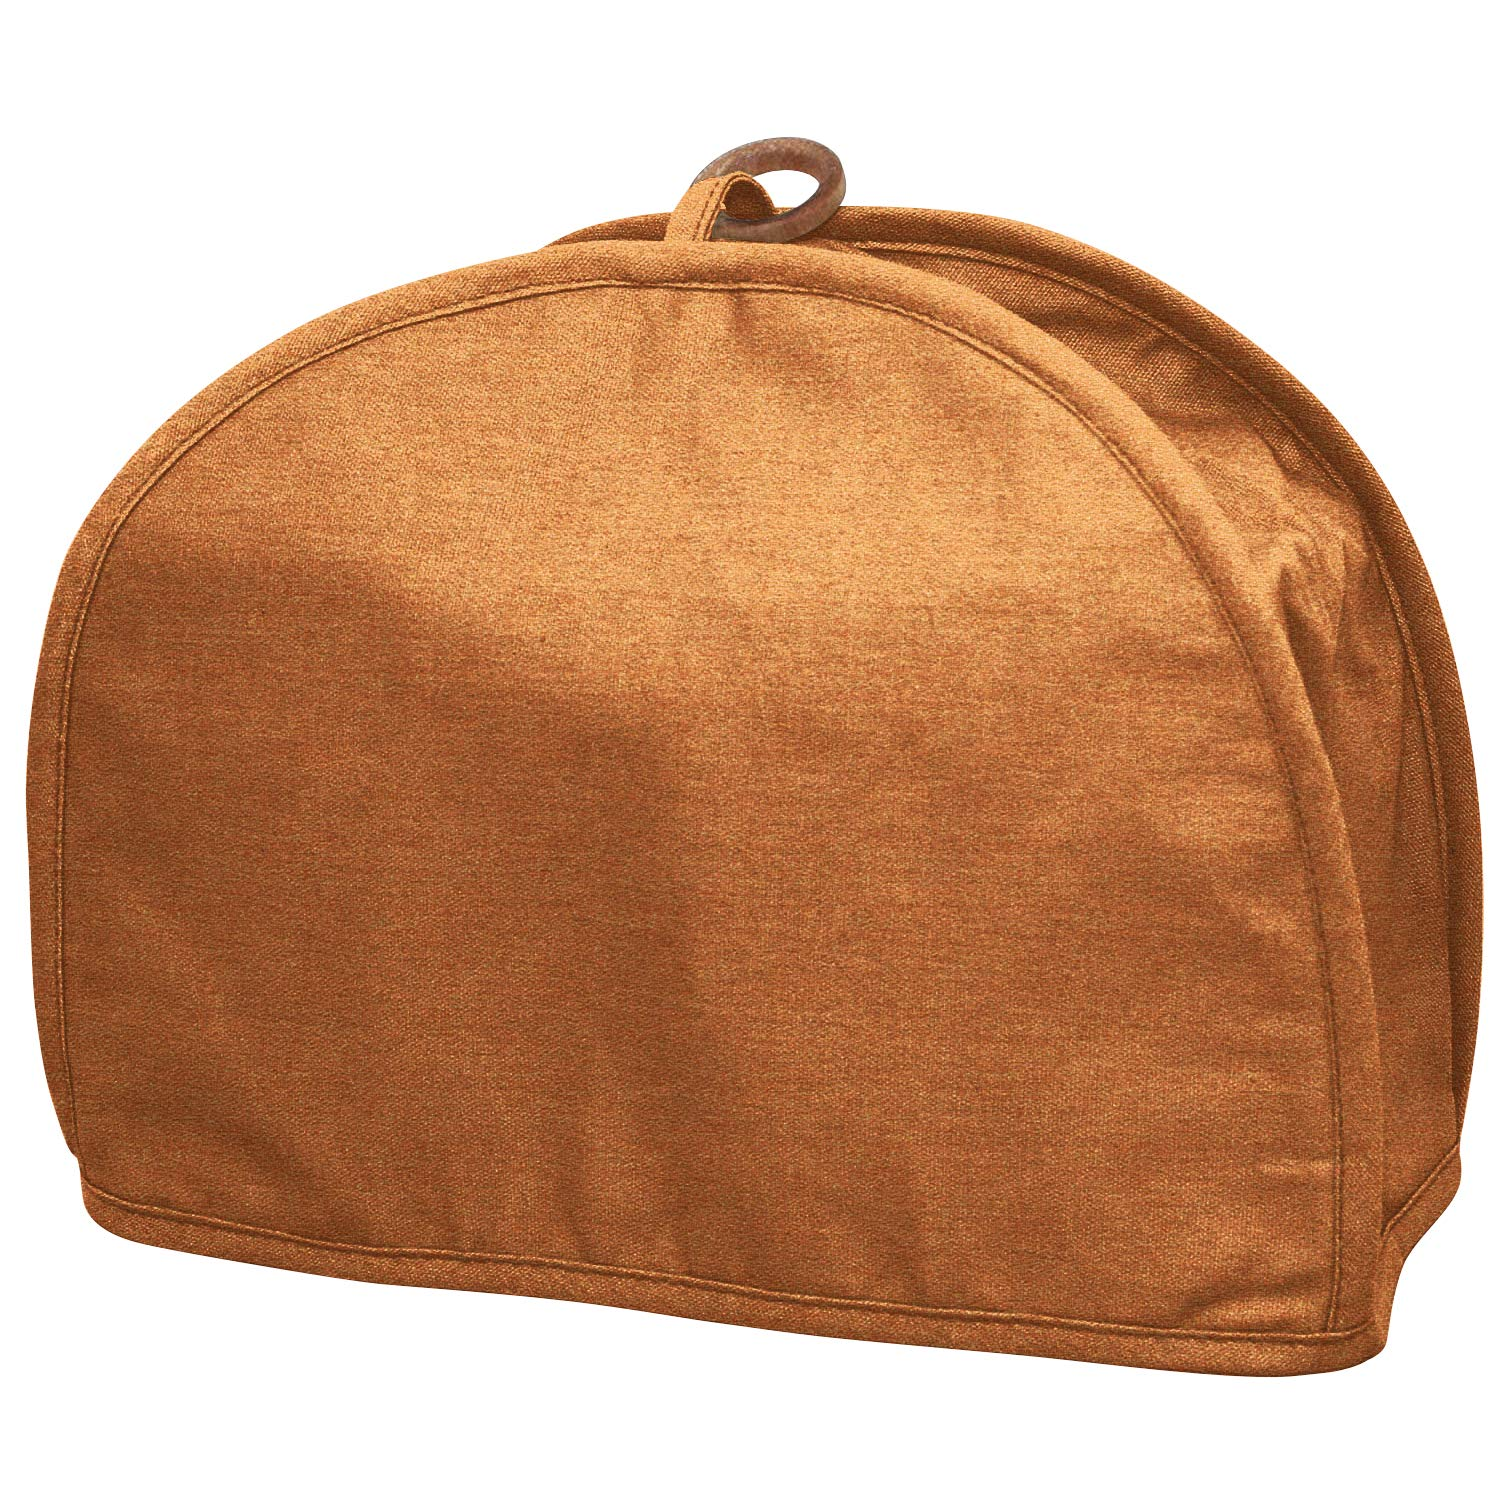 2 Slice Toaster Cover Tan,2 Slice Bread Toaster Oven Dustproof Cover,Cotton Quilted Kitchen Broiler Appliance Organizer Bag,Home Kitchen Toaster Oven Wallets Hold Toaster Broiler Appliances (Orange)